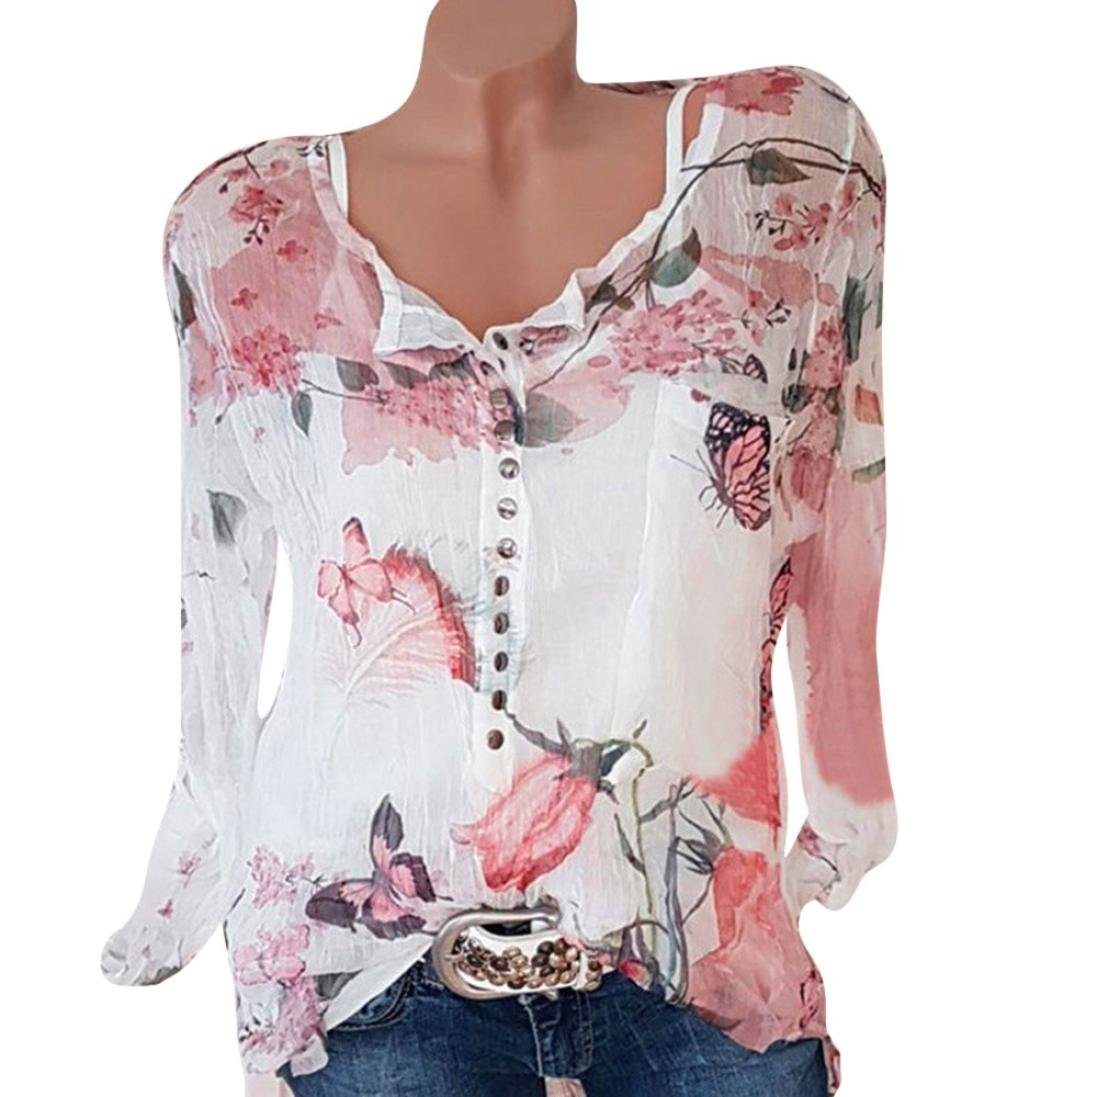 792074fe ❊Material:Chiffon♥♥Women's summer off shoulder blouses long sleeves sexy  tops chiffon ruffles casual t shirt women's v neck ruched sleeveless sexy  blouse ...